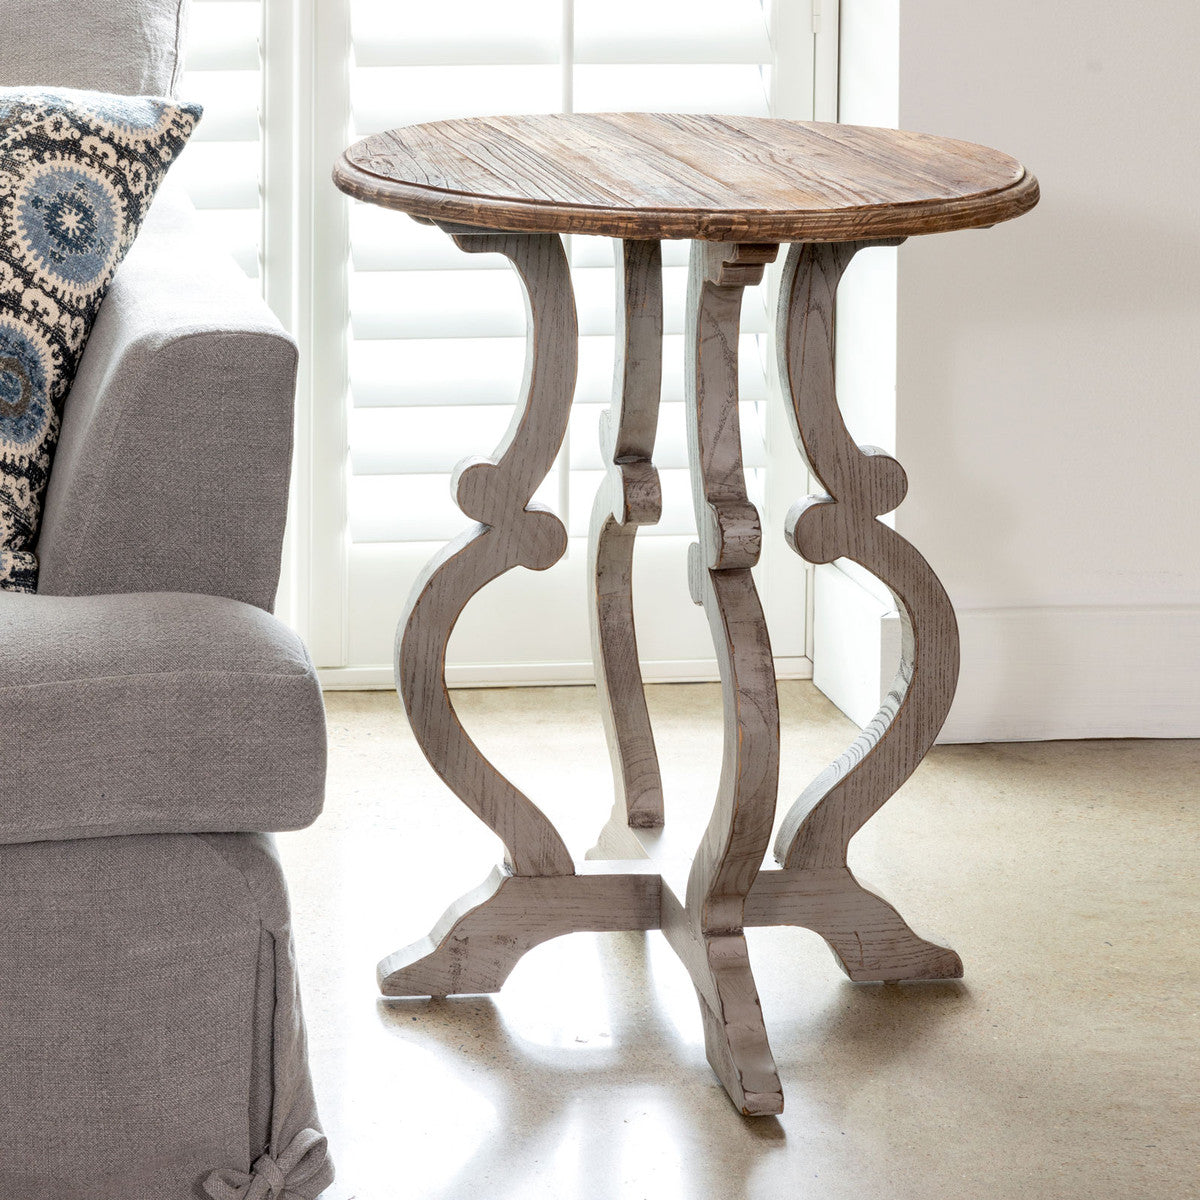 Lovecup Lindsey Table with Painted Base L585